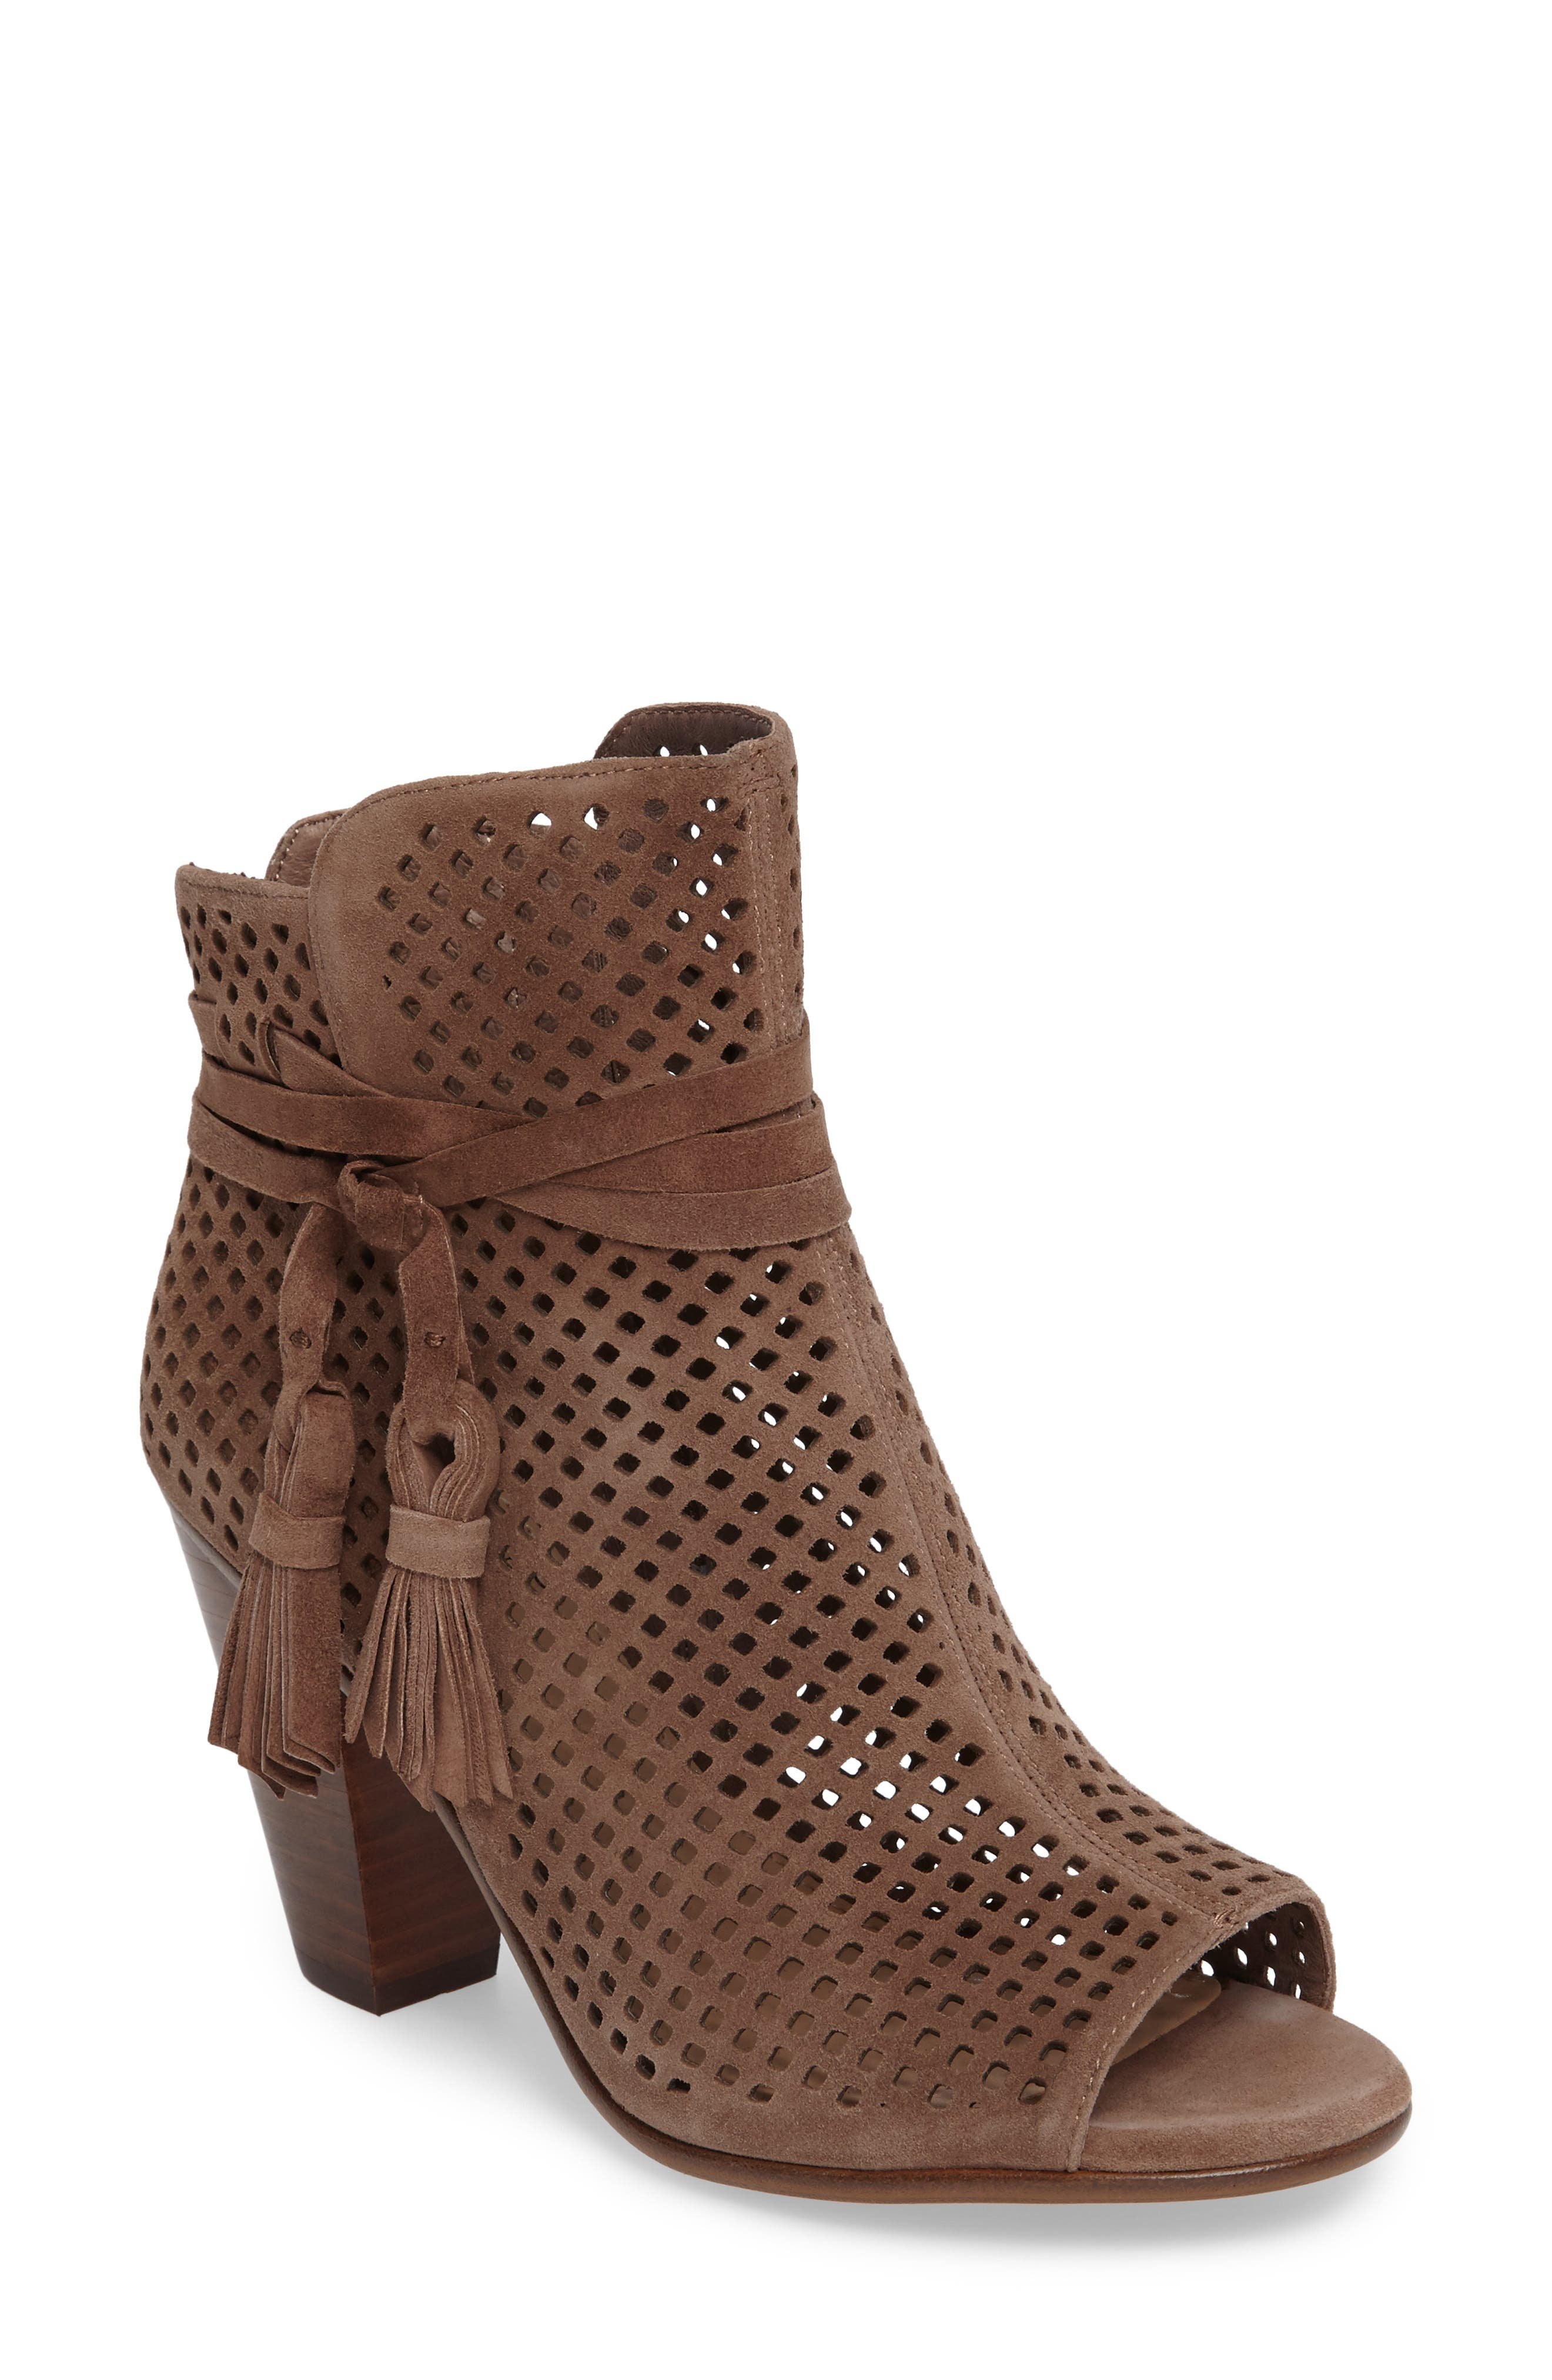 Main Image - Vince Camuto Kamey Perforated Open Toe Bootie (Women)